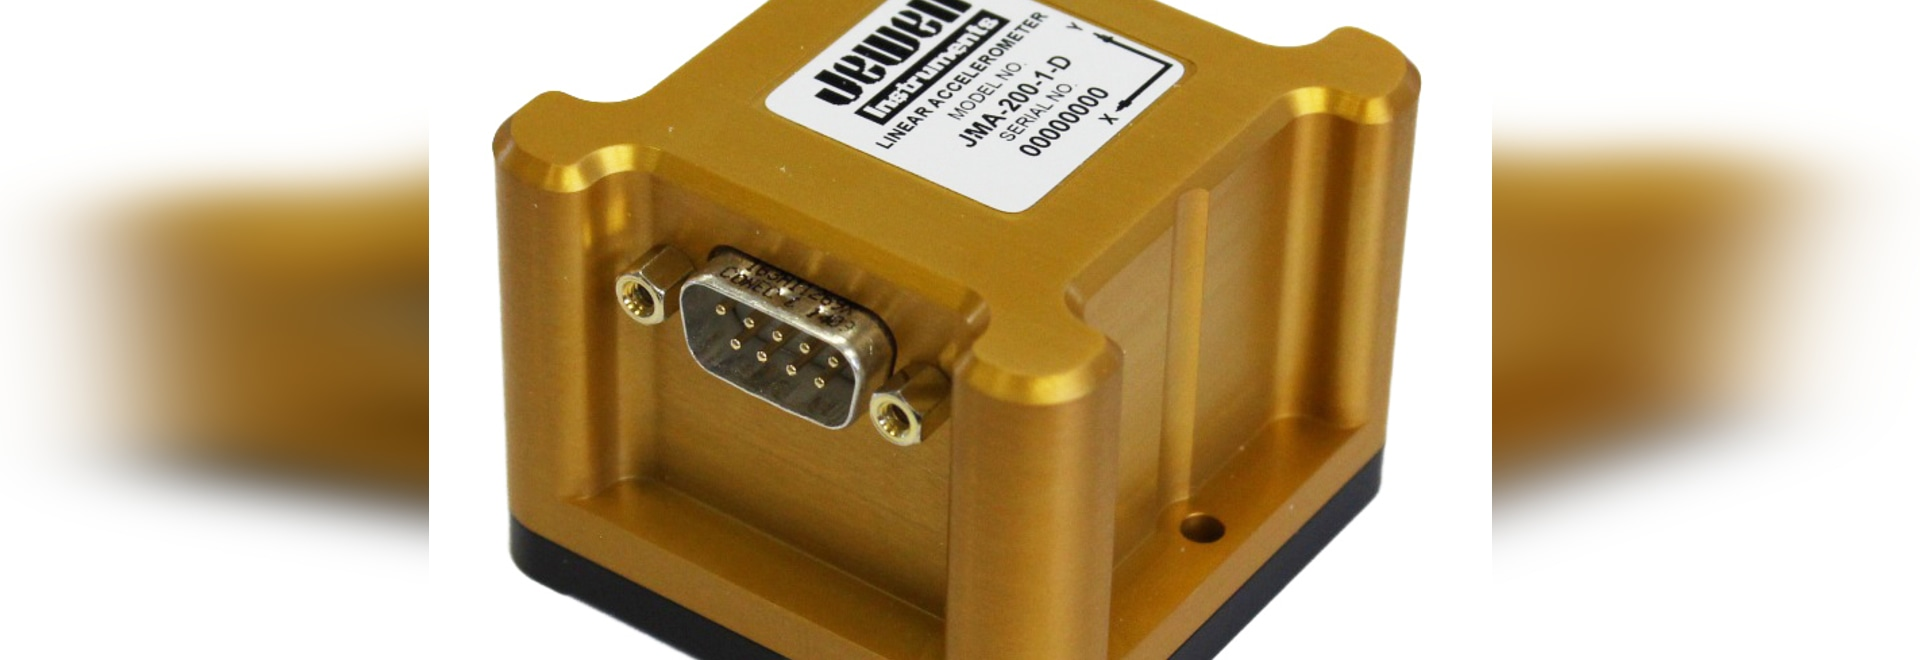 JMA-100/200/300 Offers Additional Measuring Ranges